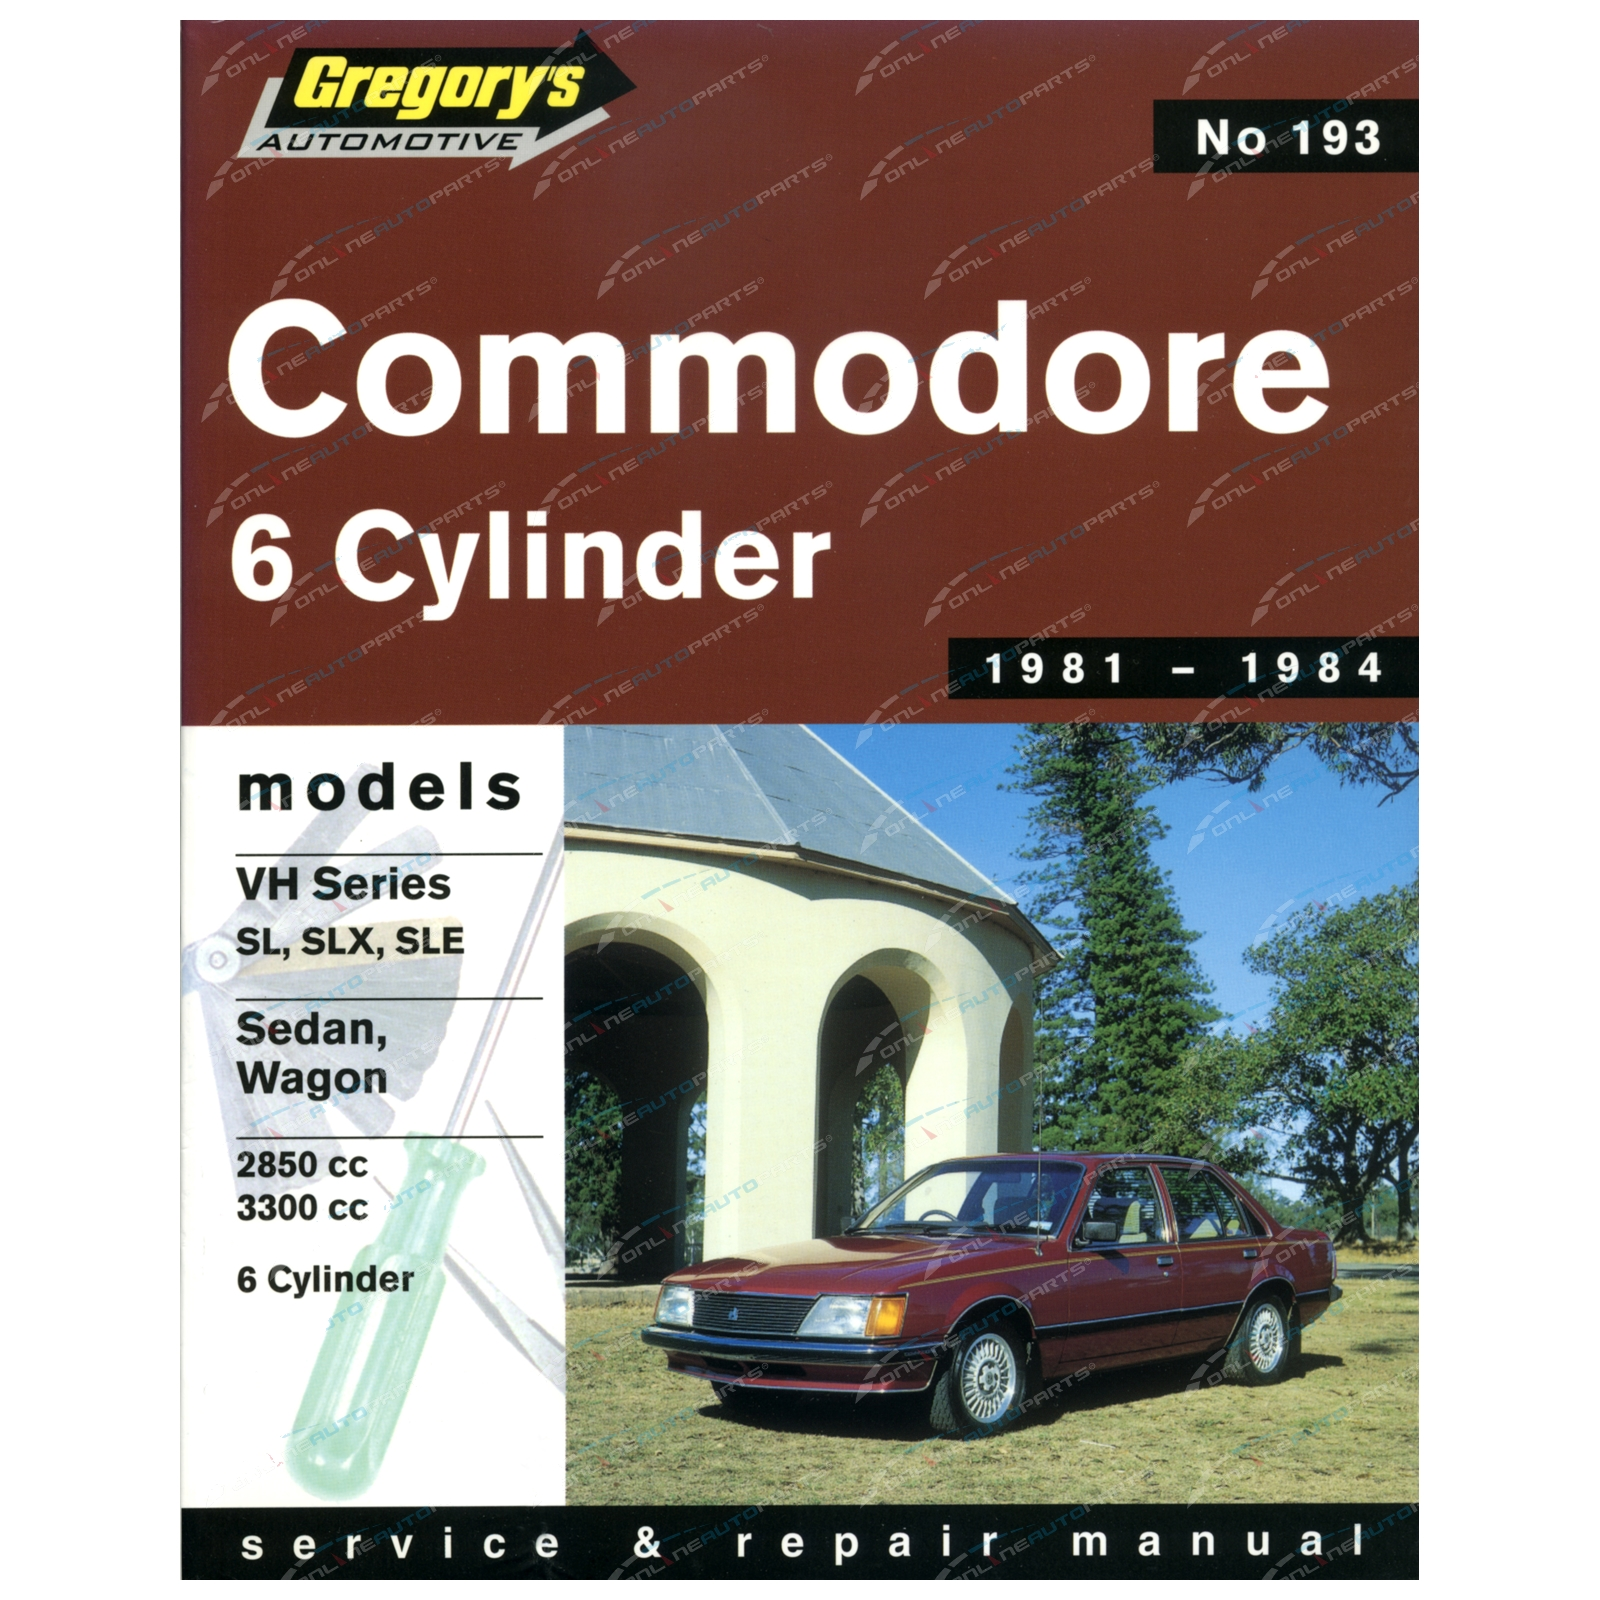 Gregory's Workshop Repair Manual Book Holden Commodore VH 6 Cylinder 1981 1982 1983 1984